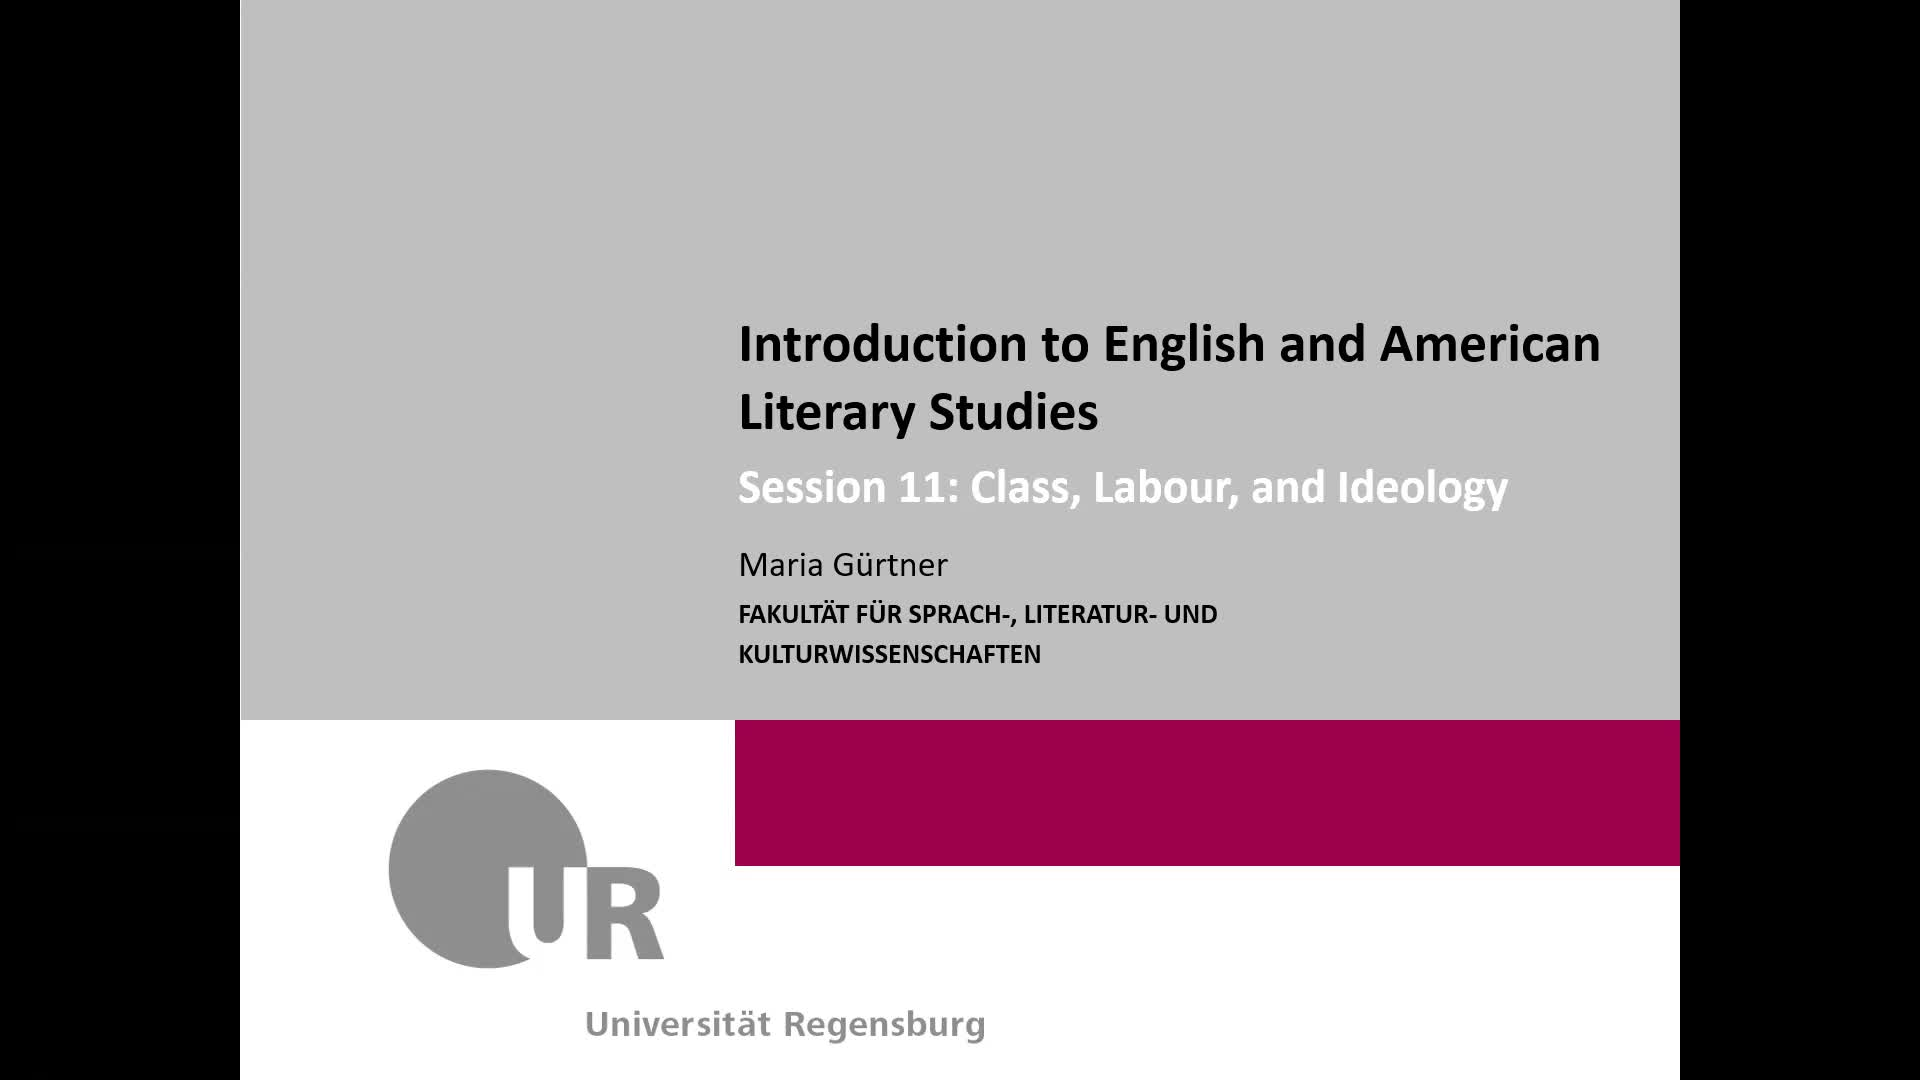 Session 11: Class, Labour, and Ideology